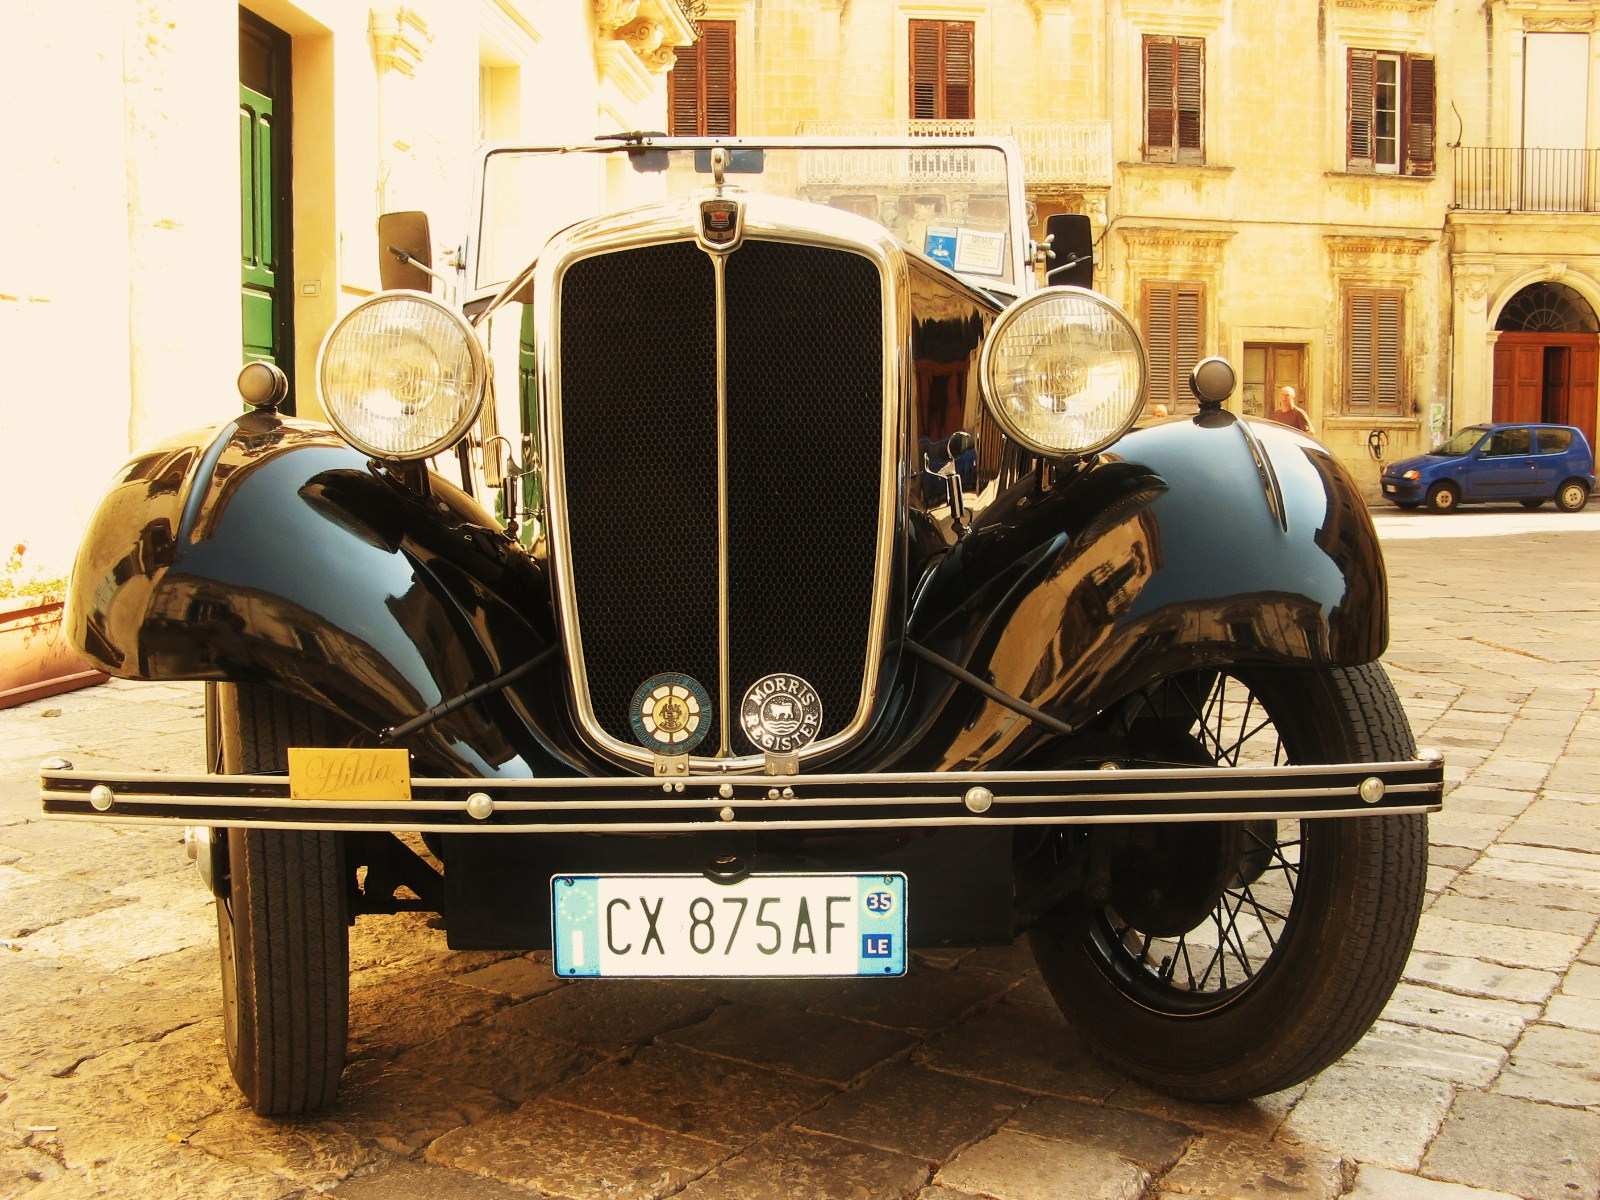 Home To Italy: Drive in Classic Cars in Italy!